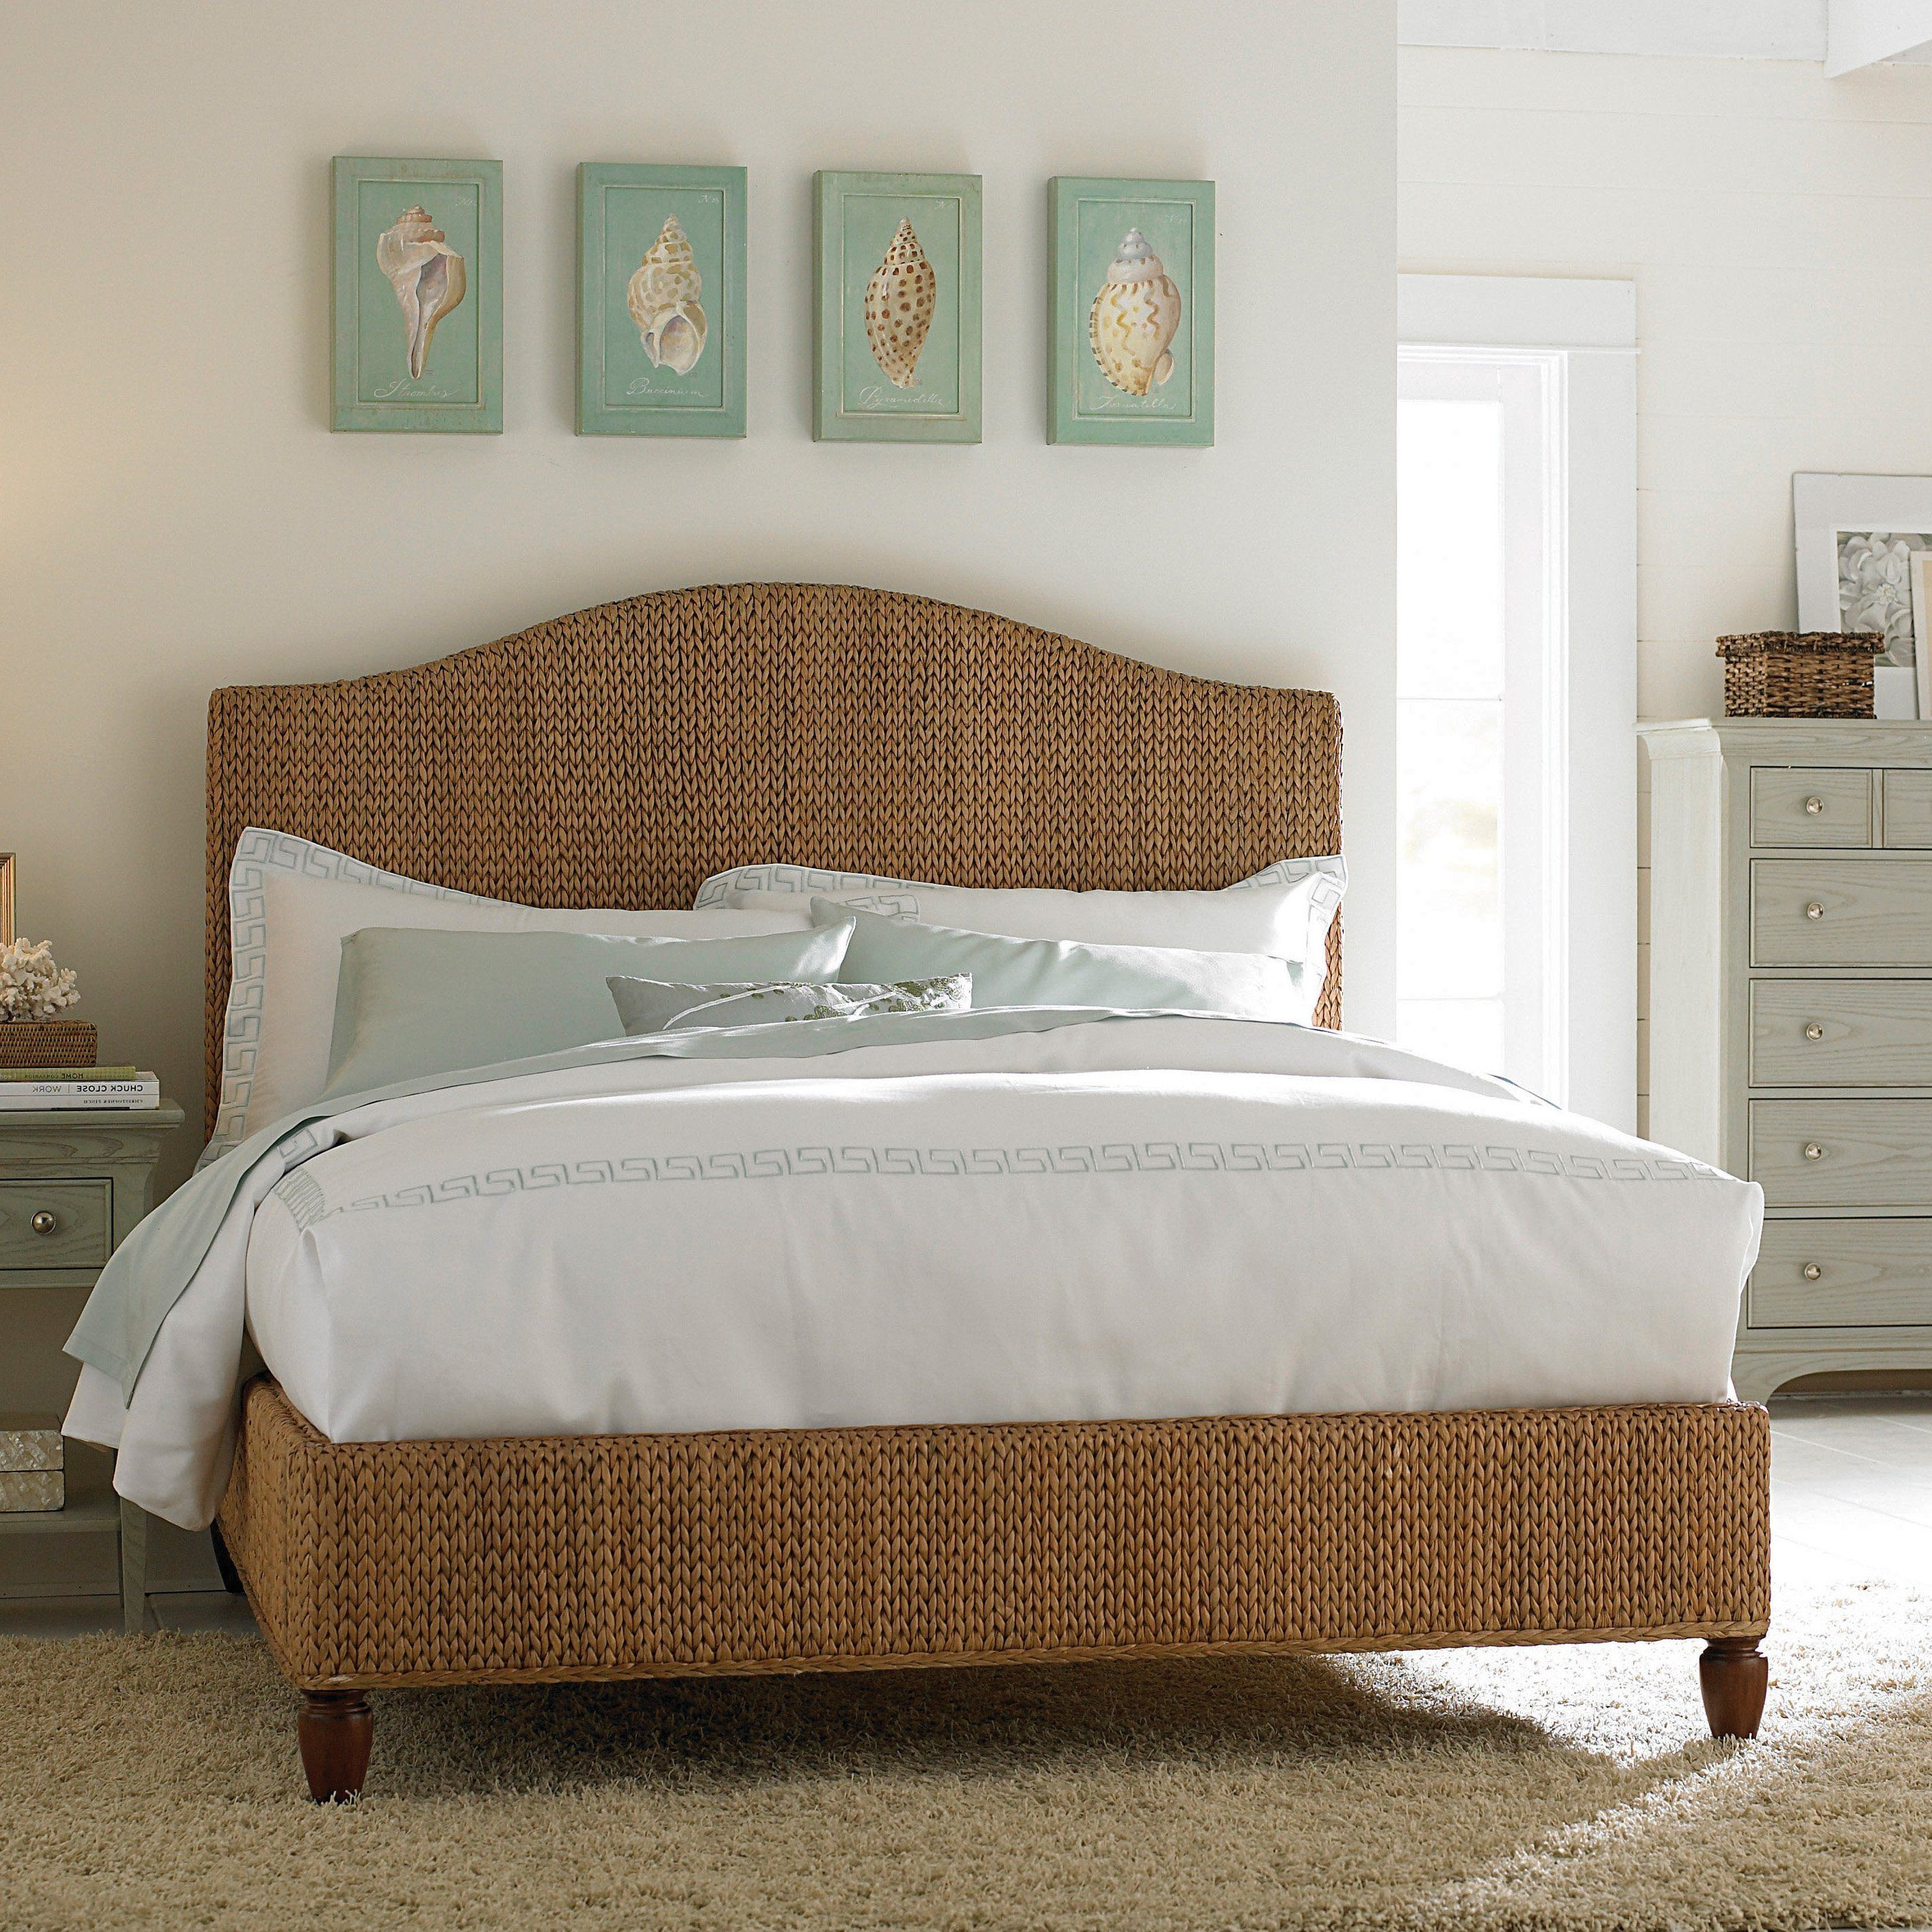 Most Por Seagr Headboard Clic Grcloth Ikea Hackers With And Cool Pillows Sea Gr Wicker